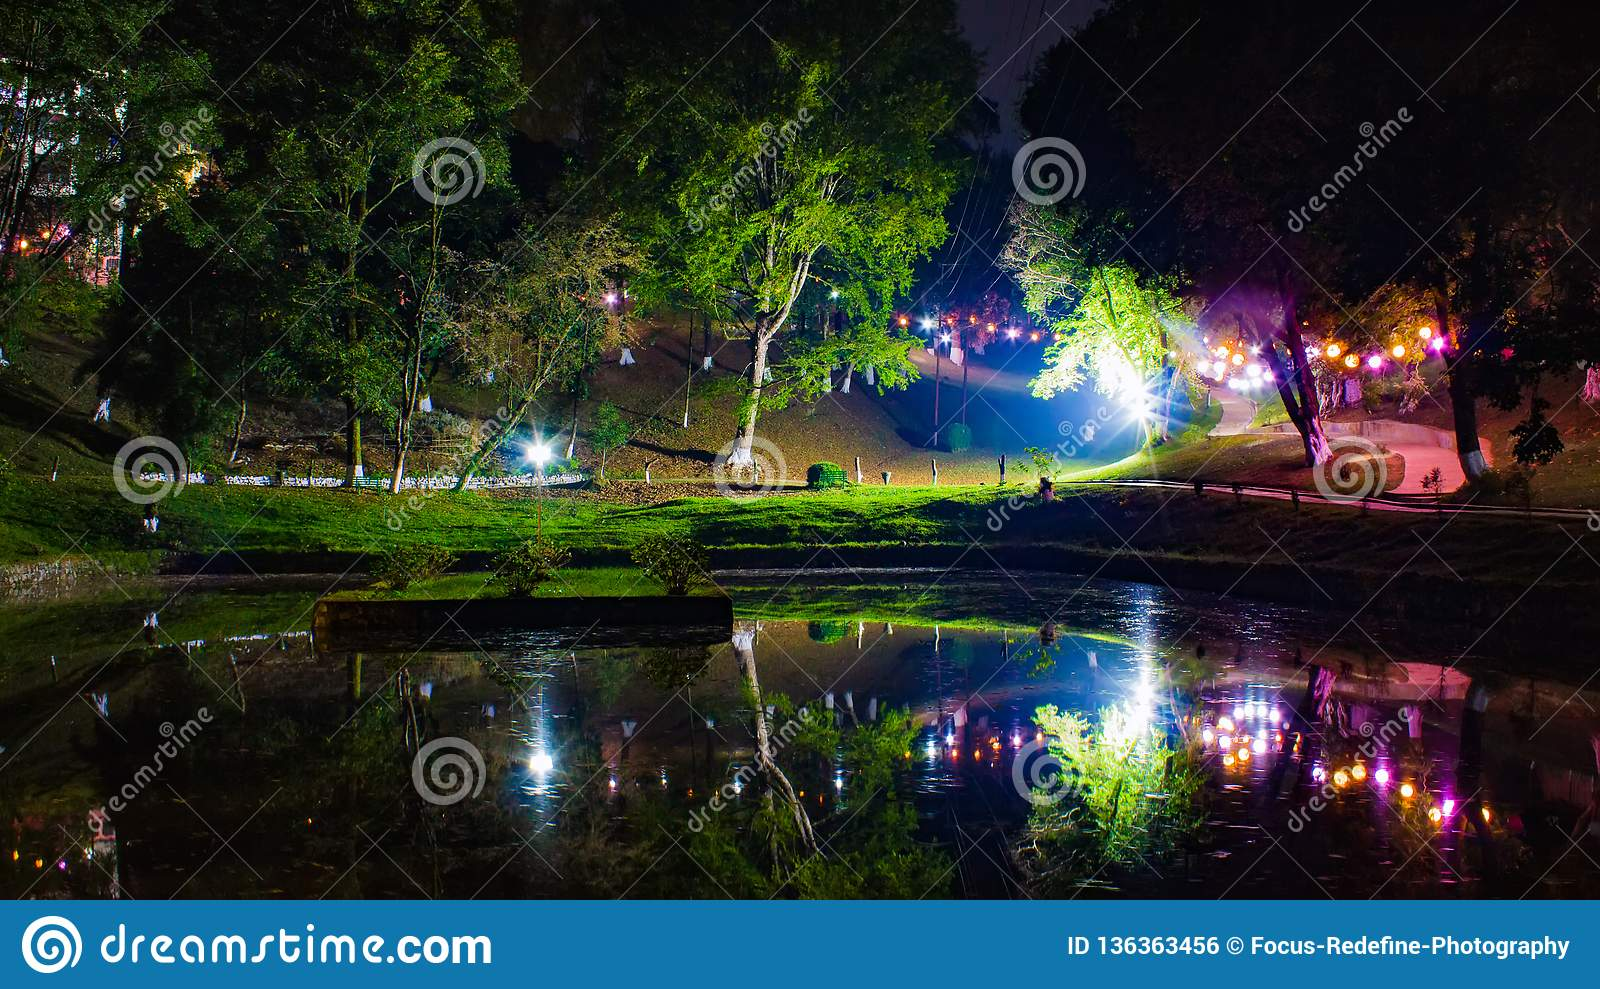 Beauty of Shillong with reflecting illumination lights on the Shillong's 3rd India International Cherry Blossom Festival 2018 at